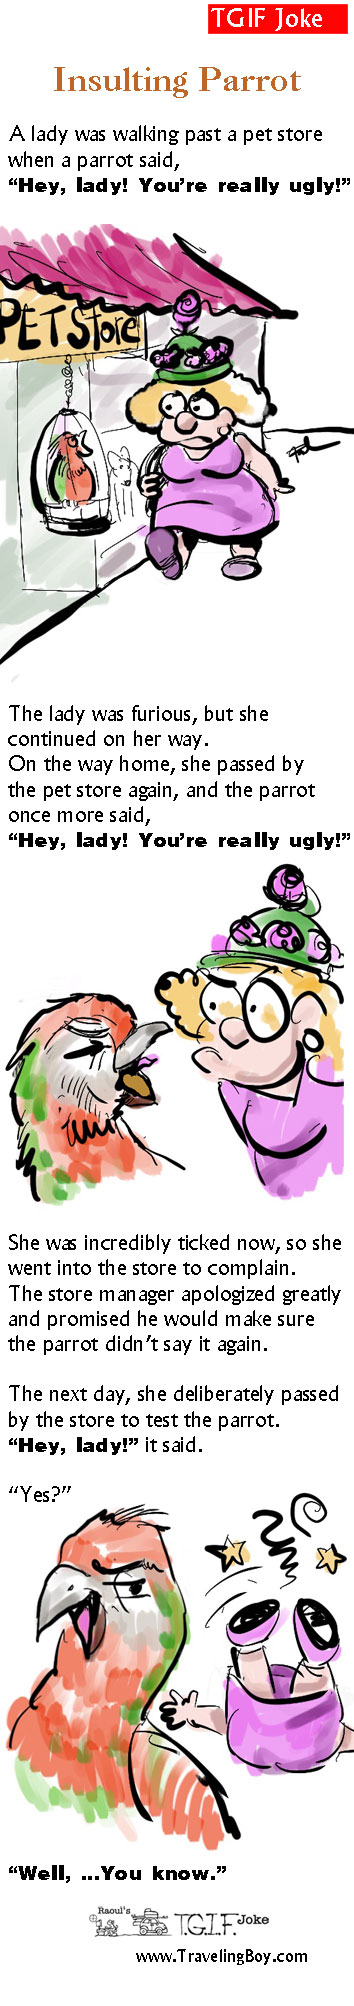 Insulting Parrot cartoon